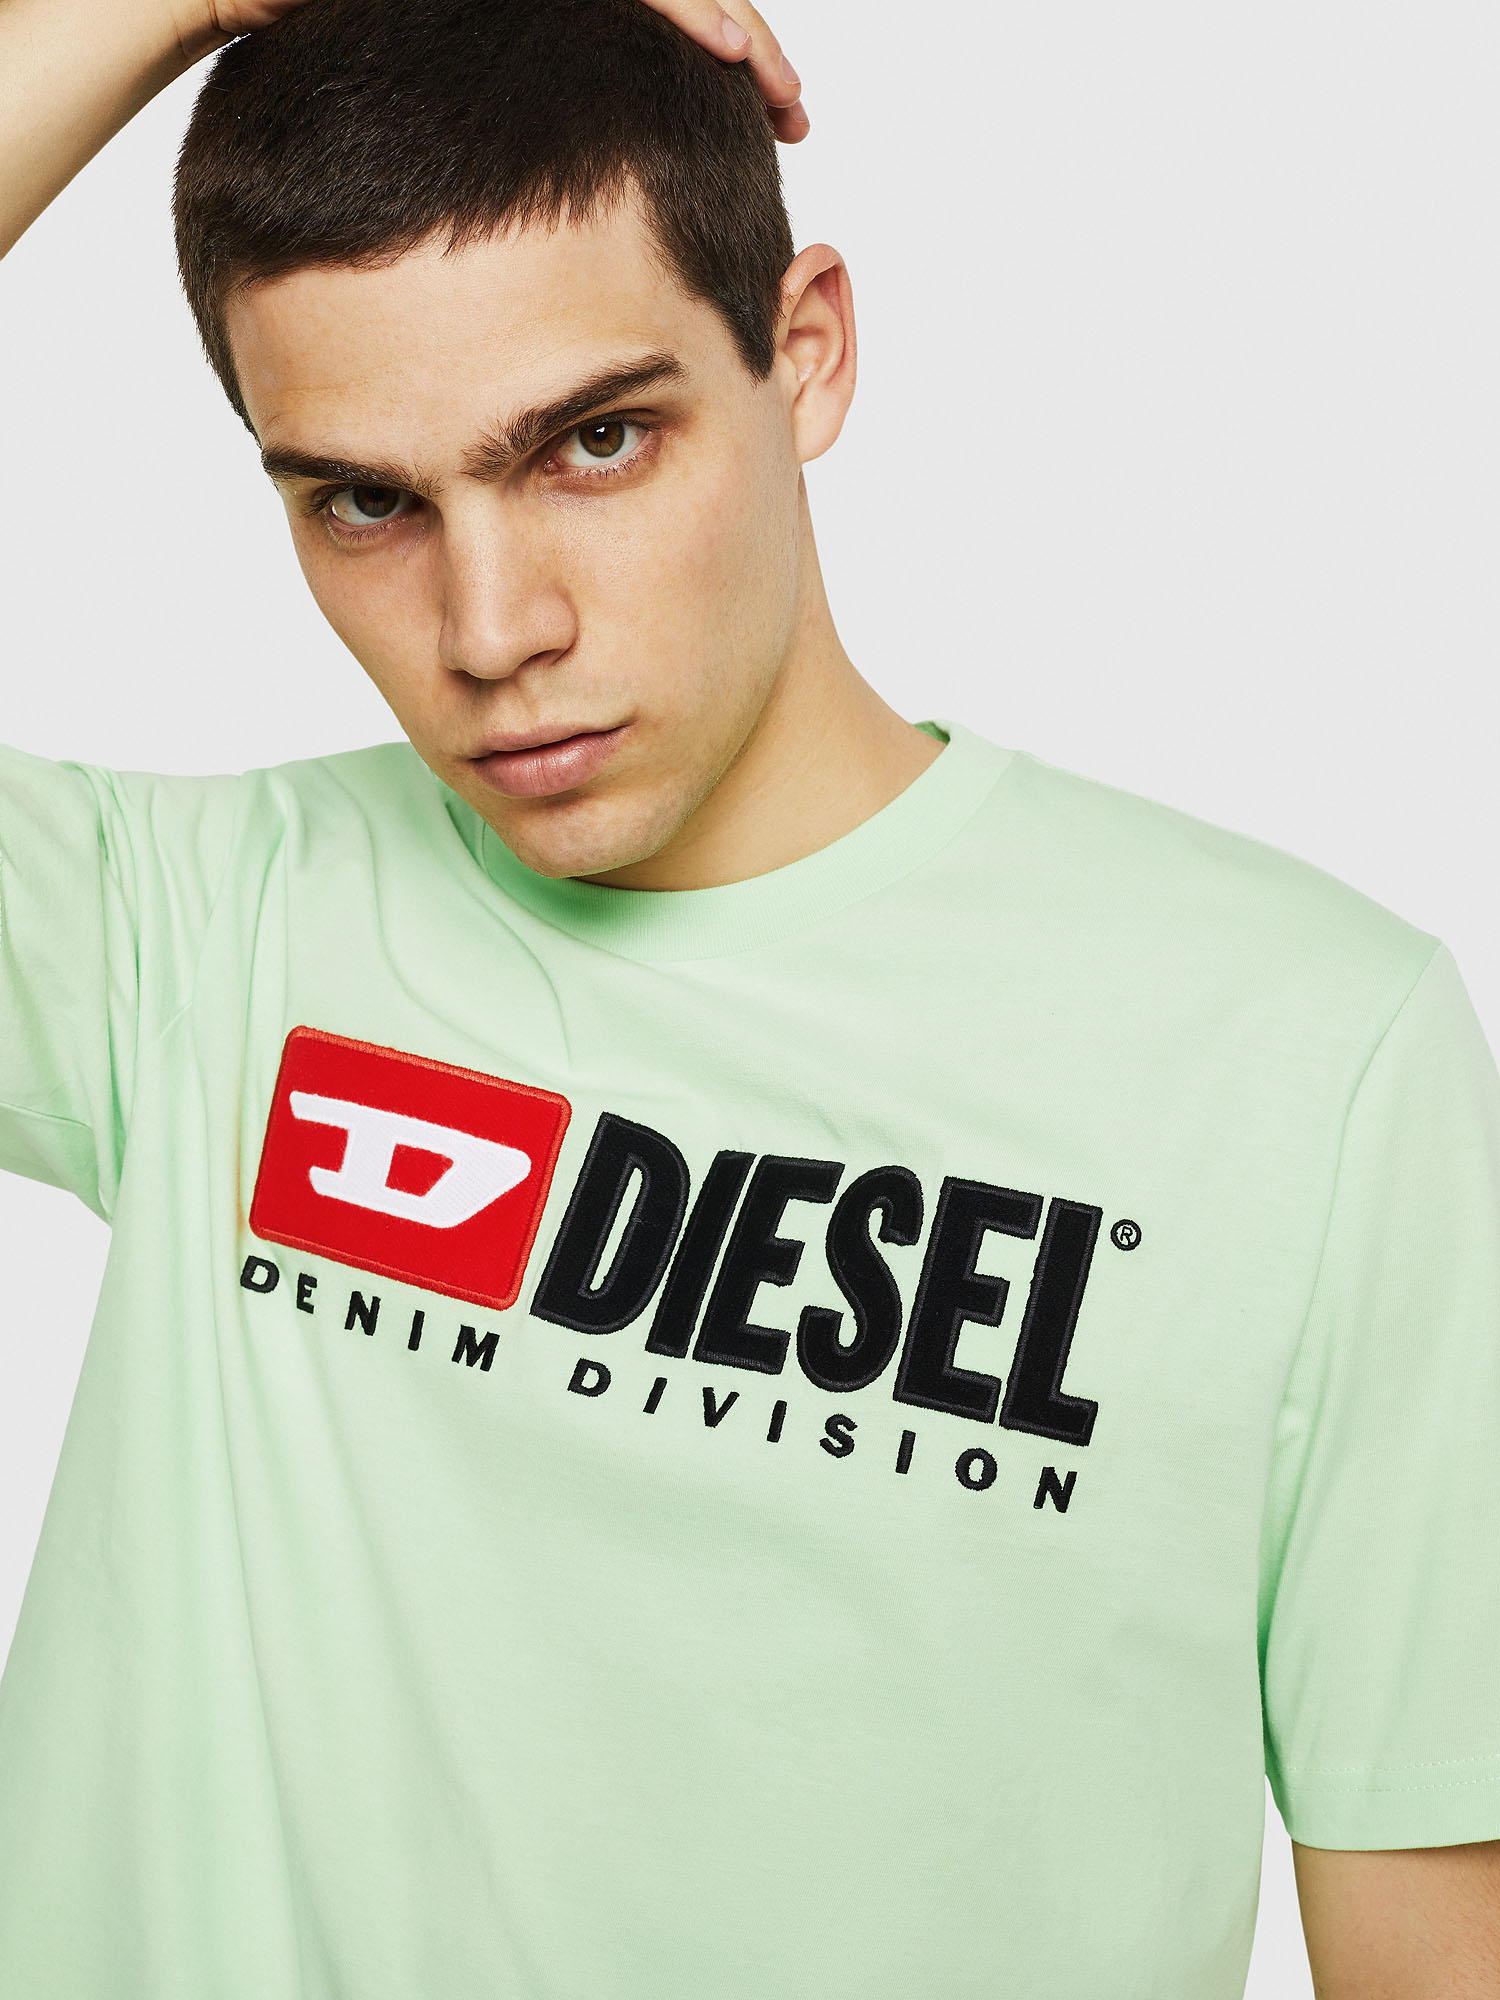 Diesel - T-JUST-DIVISION,  - T-Shirts - Image 4